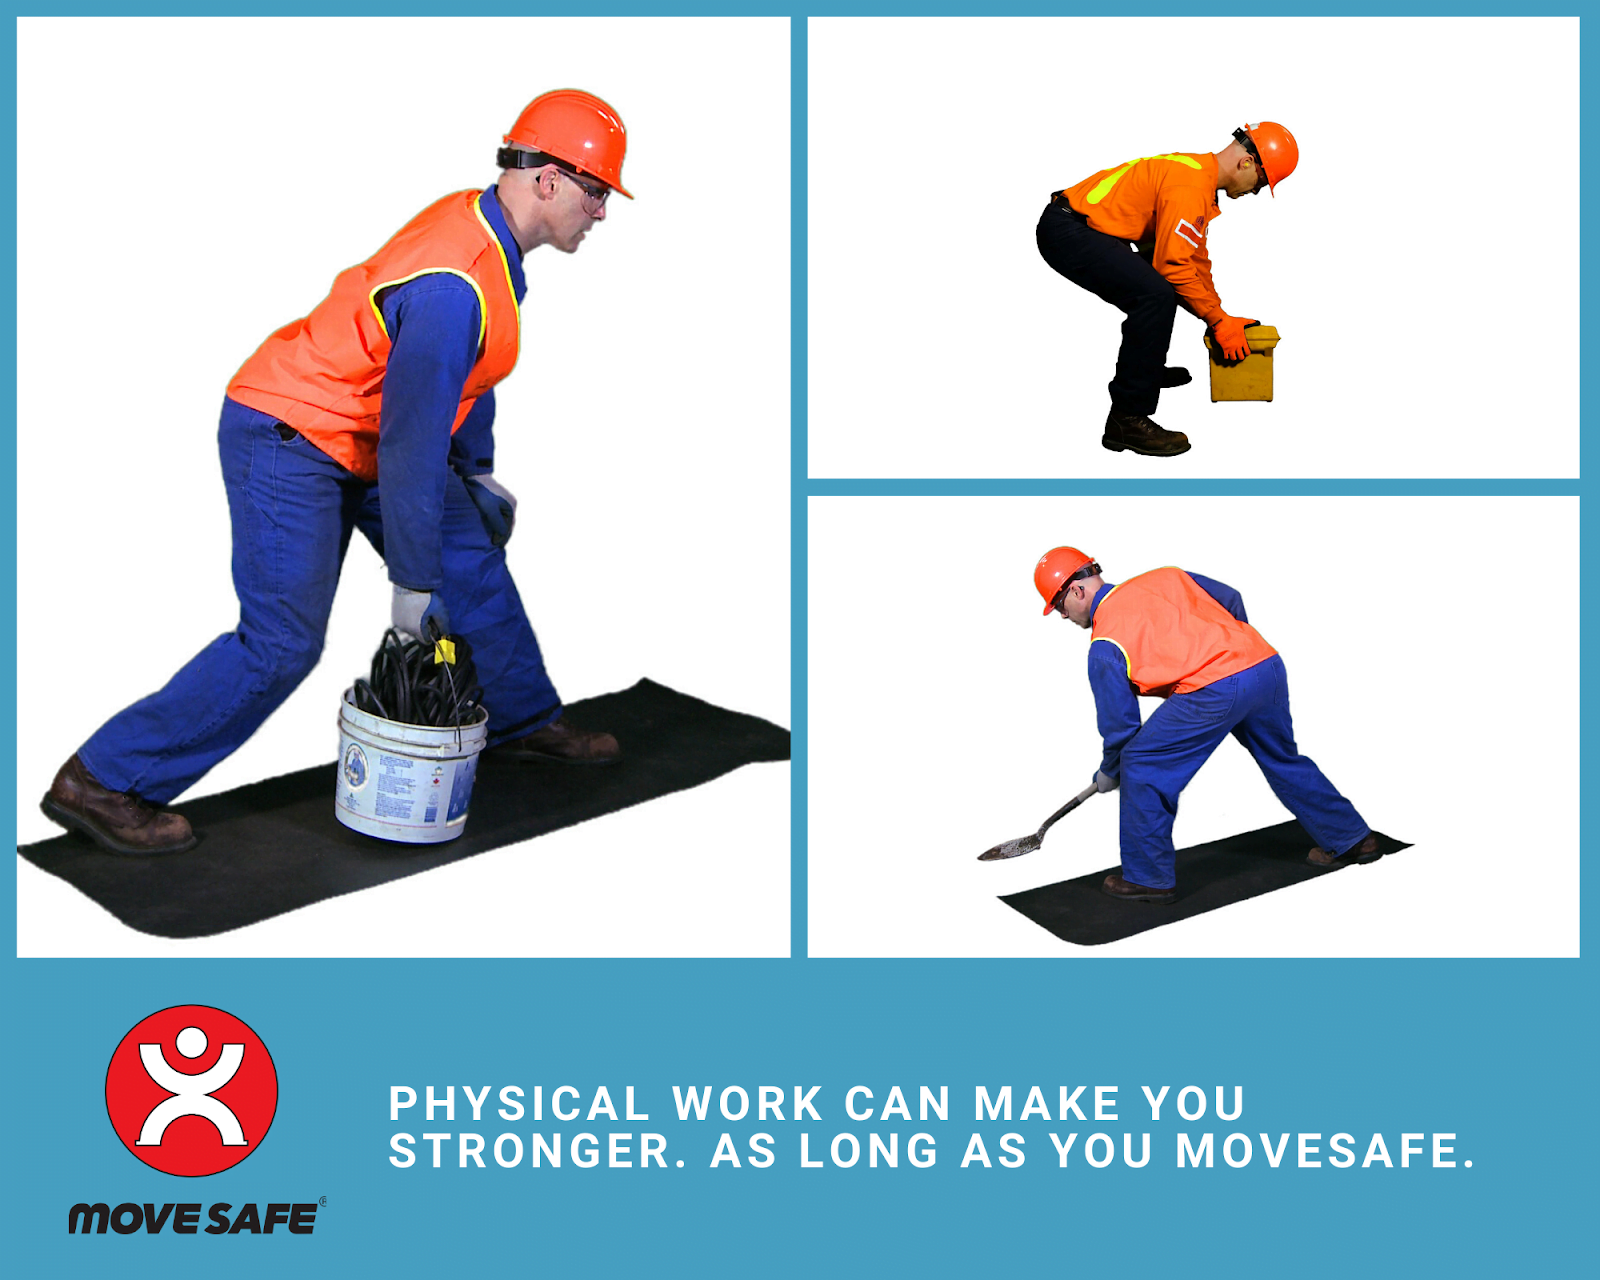 The Big 3: How to Move Safely While Doing Physical Work